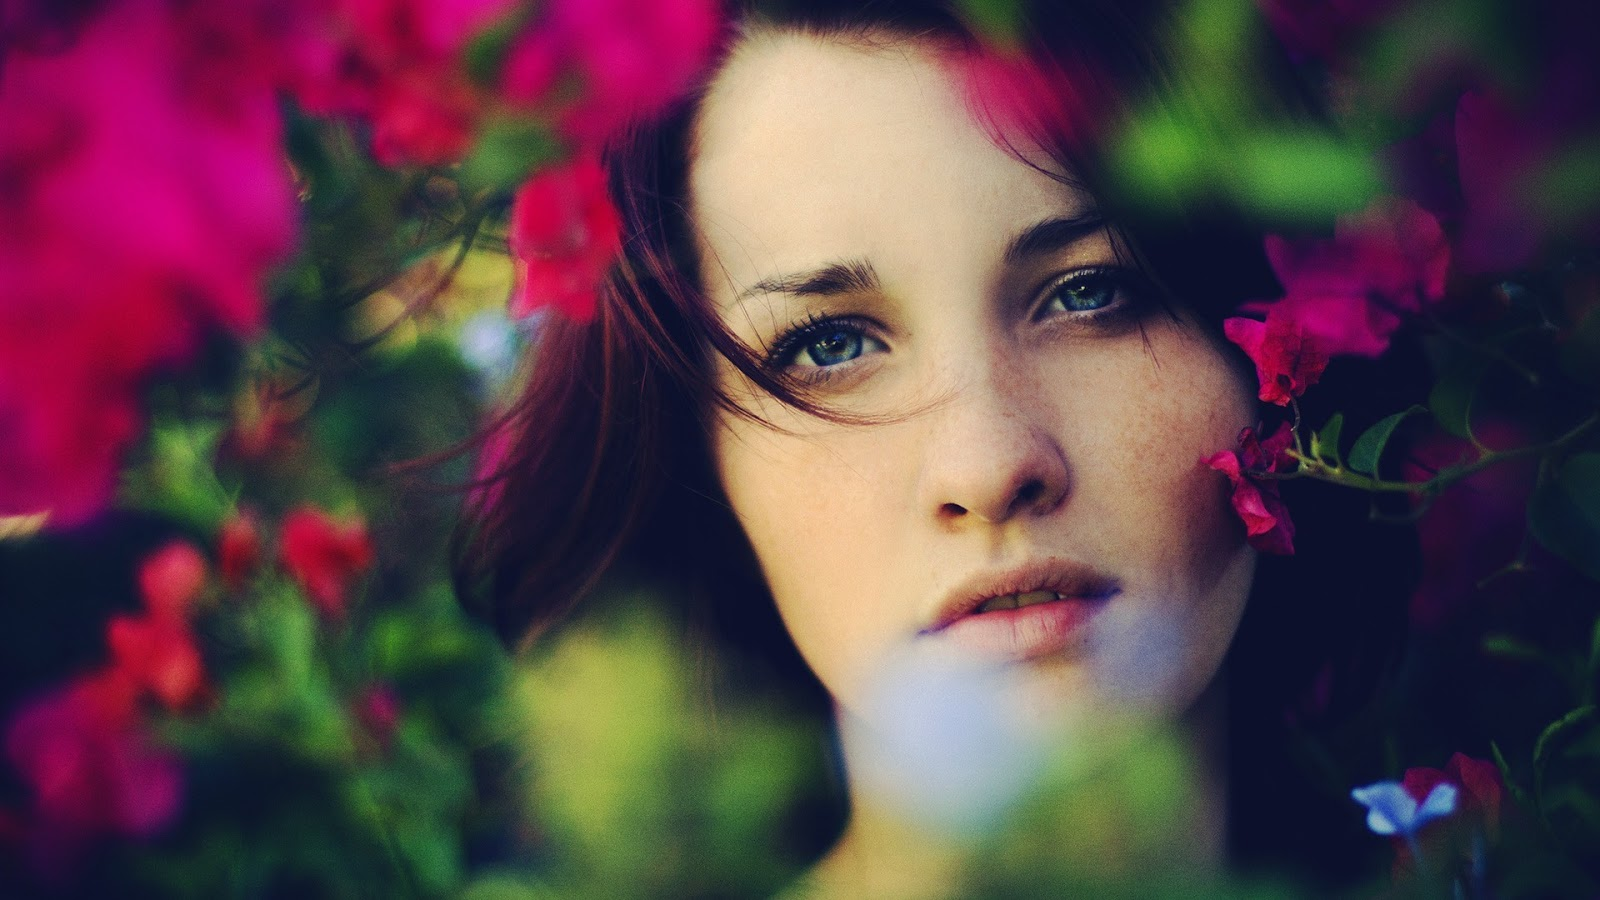 Beautiful Blue Eyed Girl Between Flowers HD Wallpaper | ReWallpaper